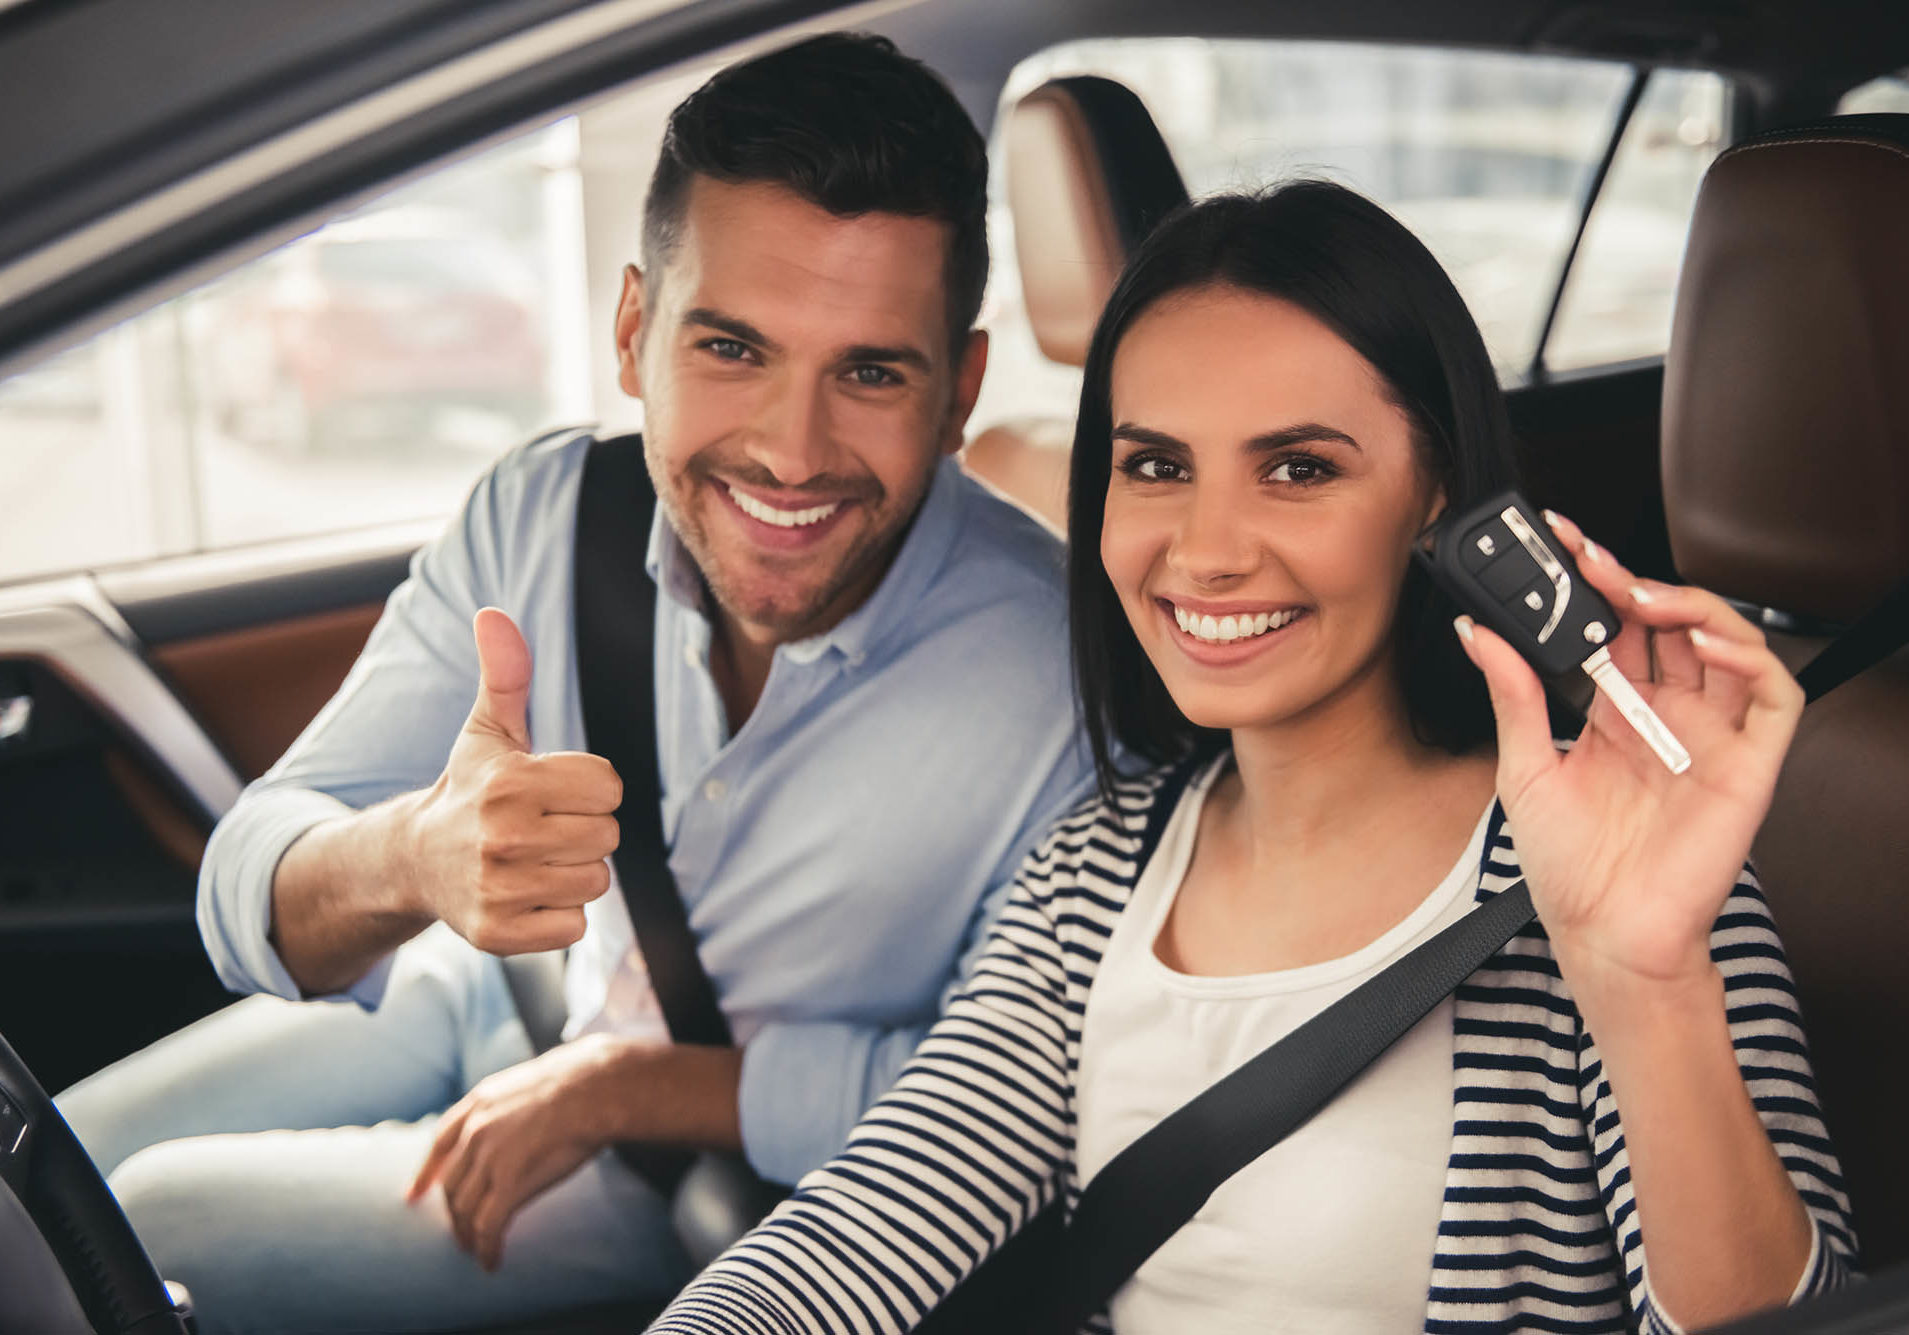 Visiting car dealership. Beautiful couple is holding a car key, looking at camera and smiling while sitting in their new car